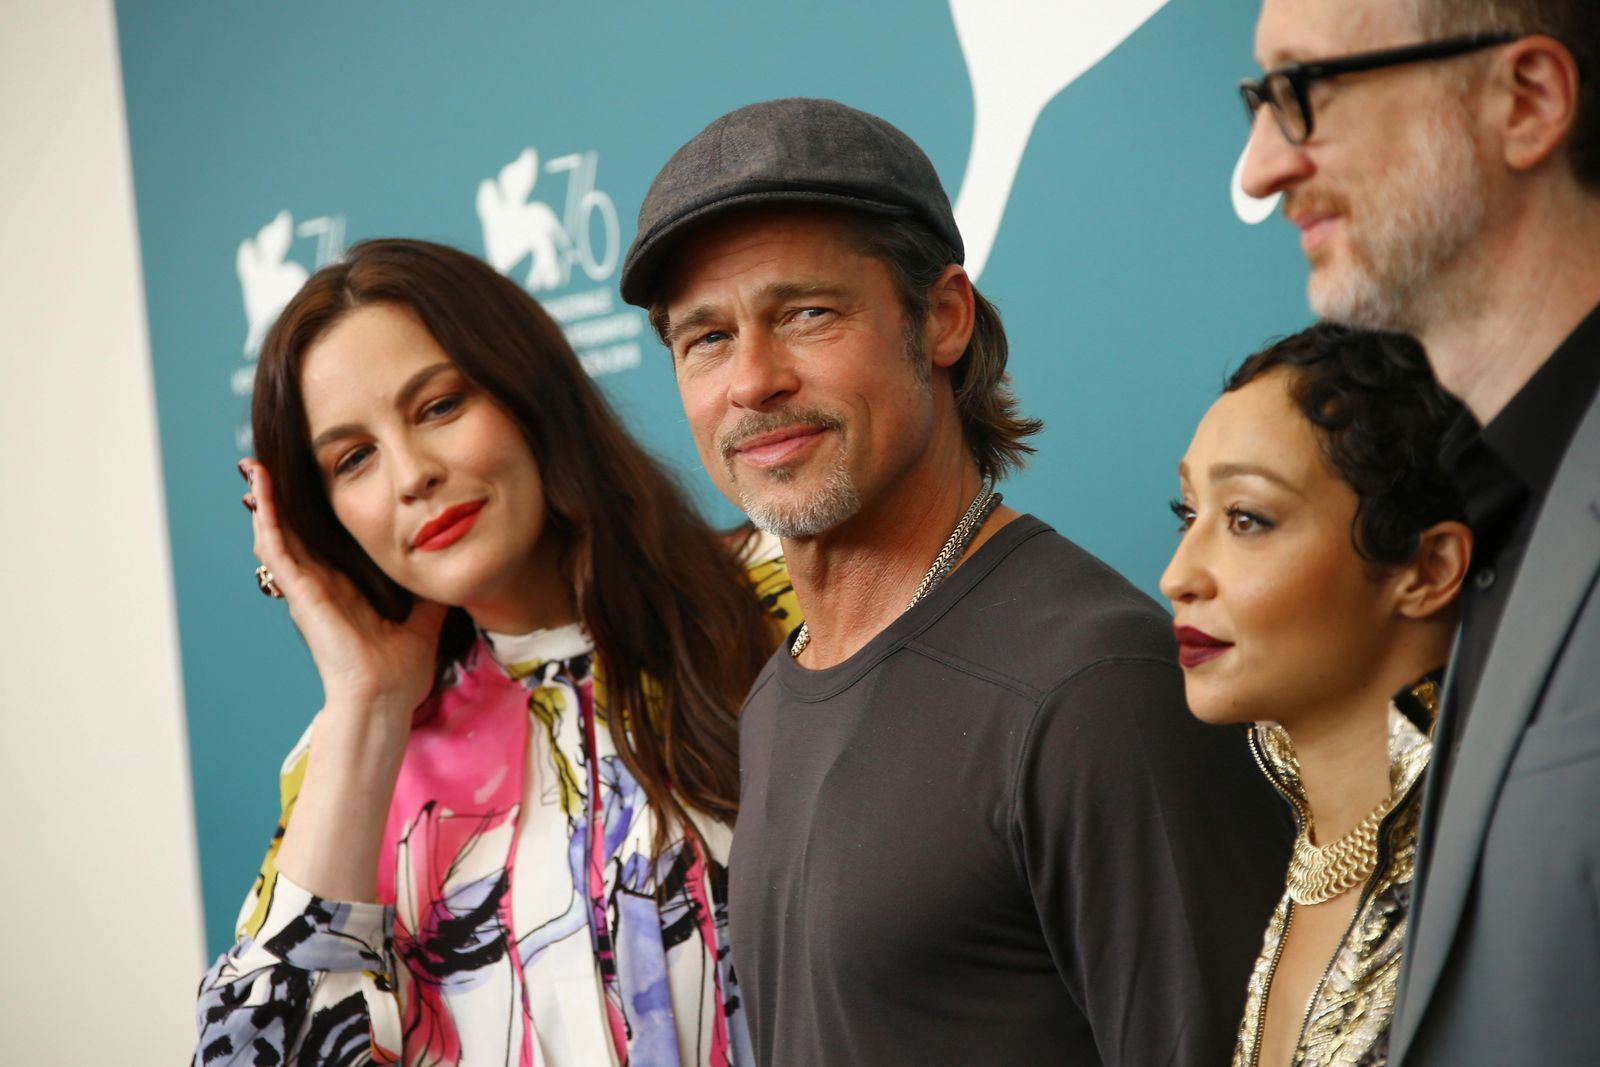 Actors Liv Tyler, from left, Brad Pitt, Ruth Negga and director James Gray pose for photographers at the photo call for the film 'Ad Astra' at the 76th edition of the Venice Film Festival in Venice, Italy, Thursday, Aug. 29, 2019. (Photo by Joel C Ryan/Invision/AP)